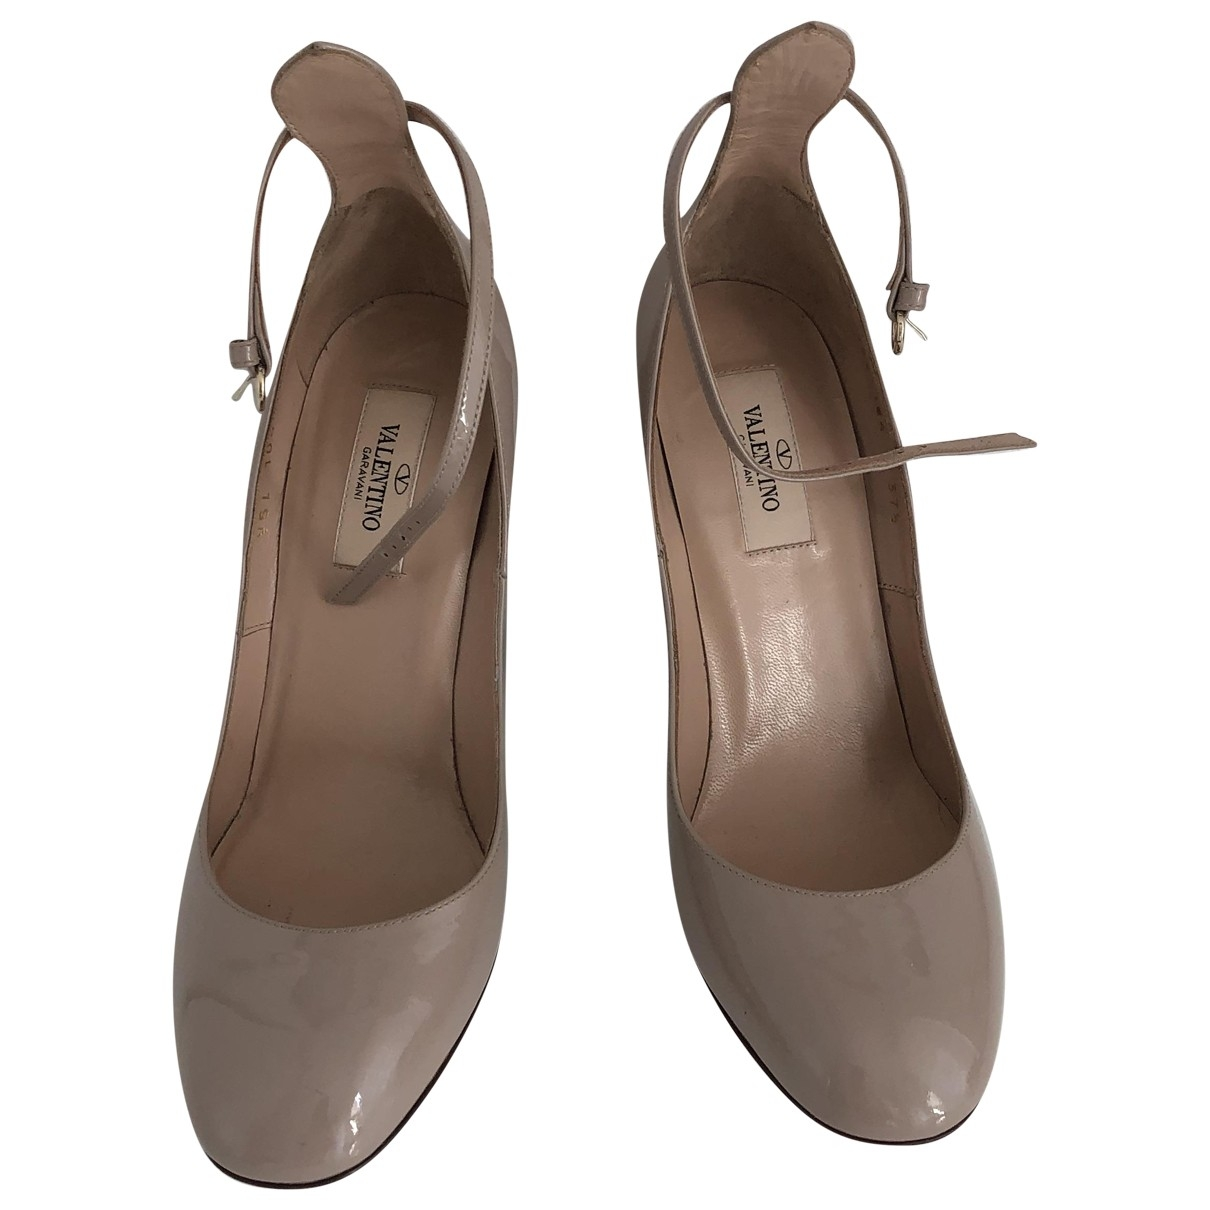 Valentino Garavani \N Pumps in  Beige Lackleder